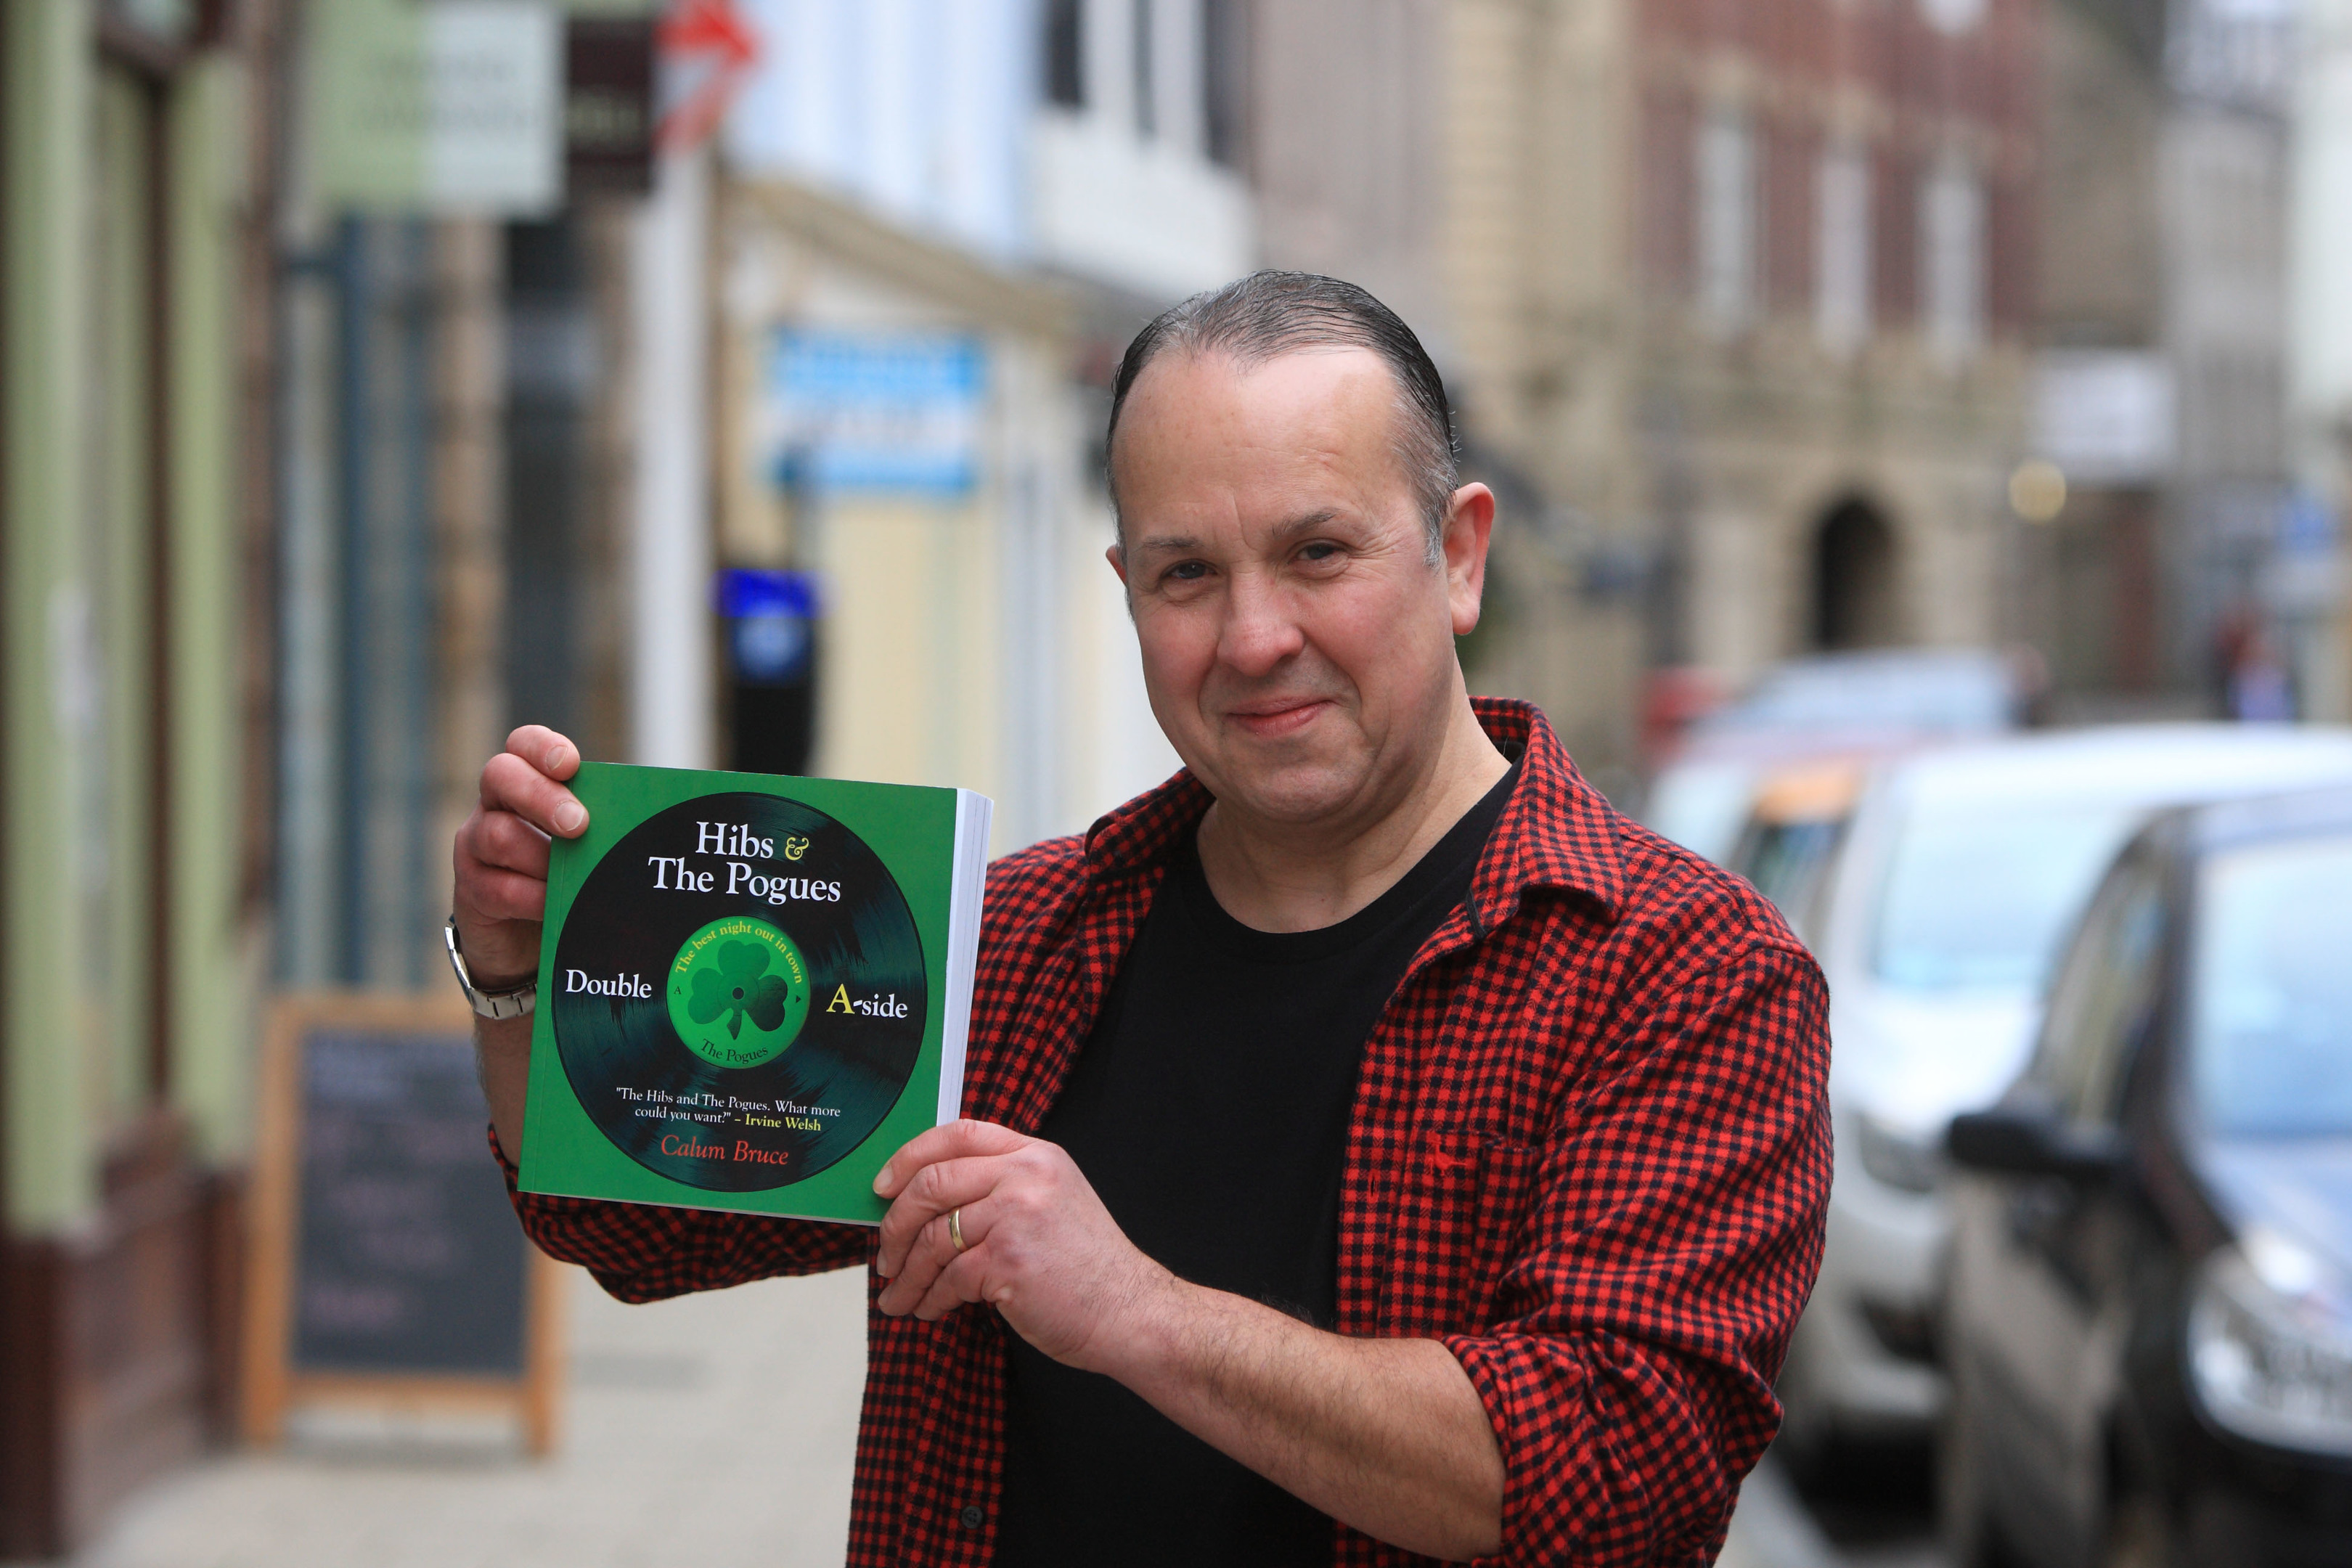 Author Calum Bruce with his new book Hibs and the Pogues.